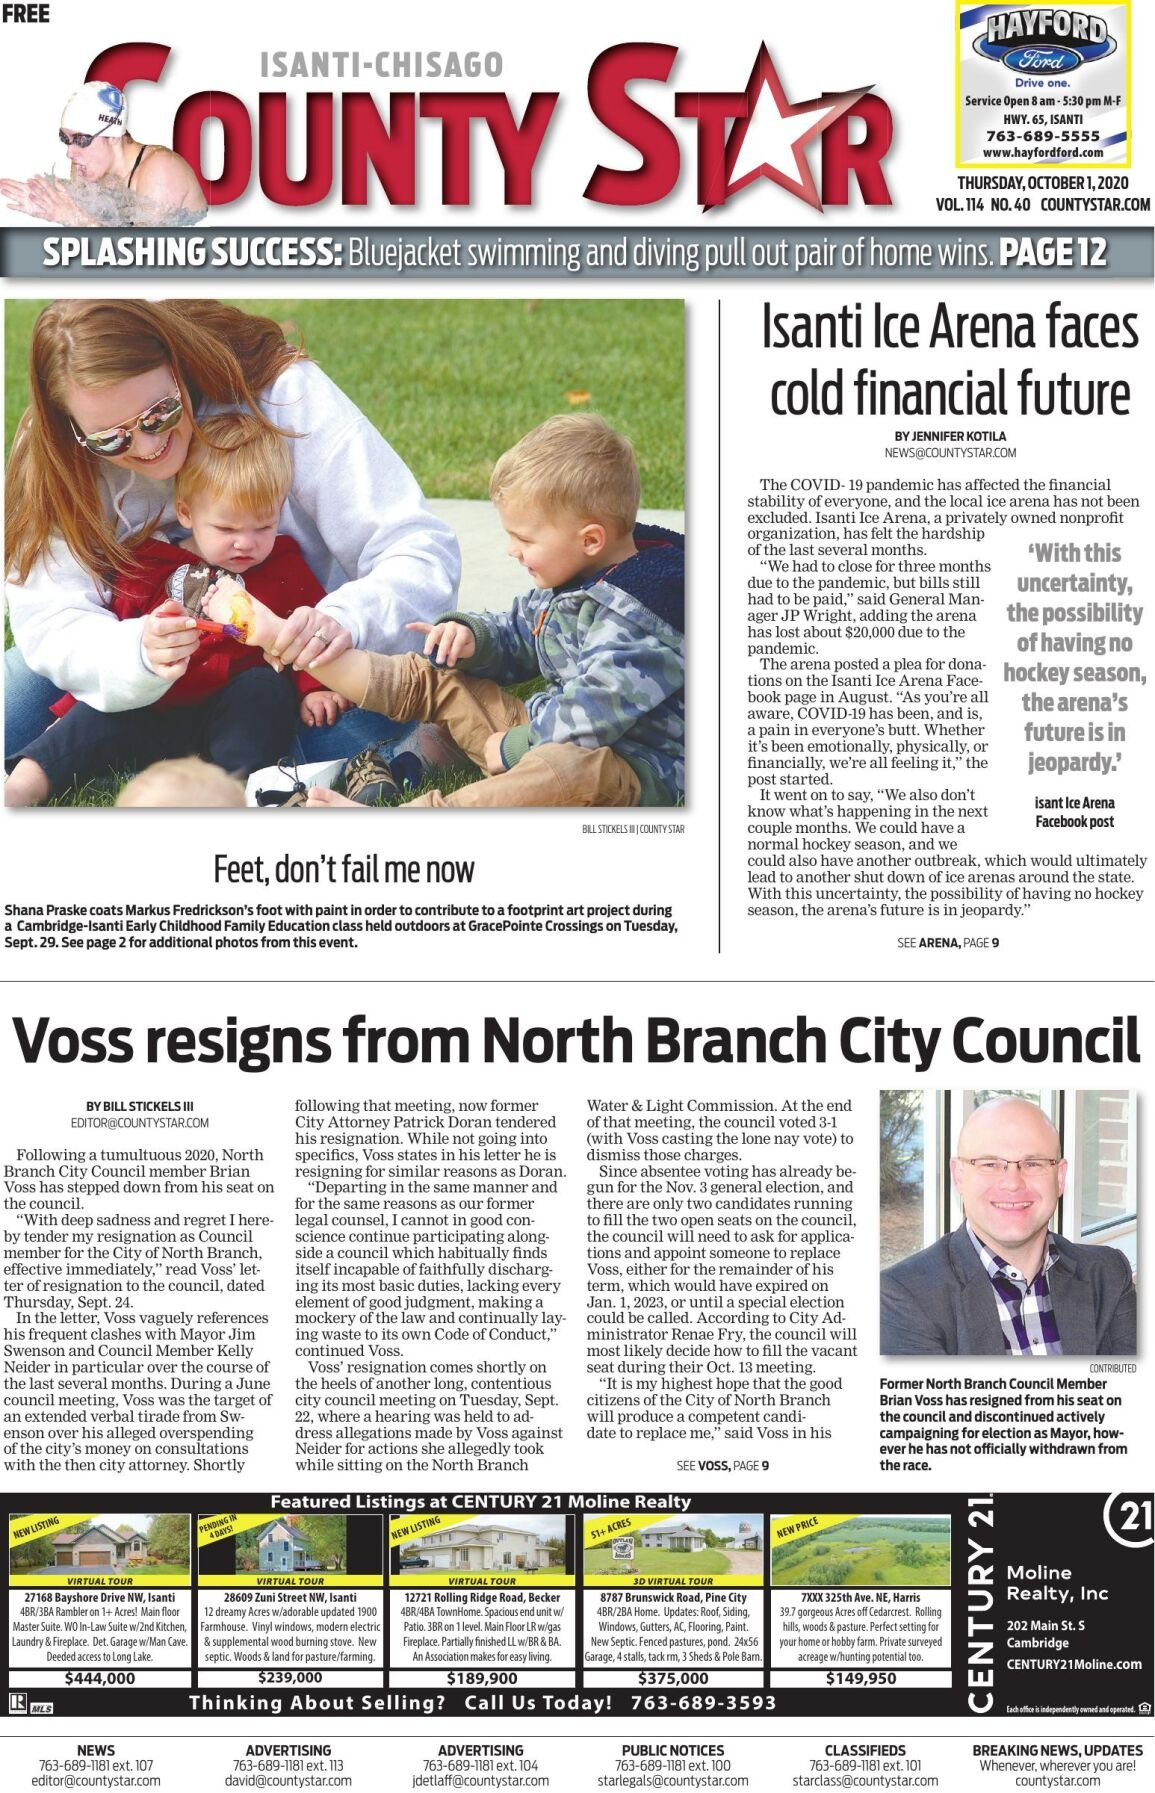 Isanti-Chisago County Star October 1, 2020 e-edition